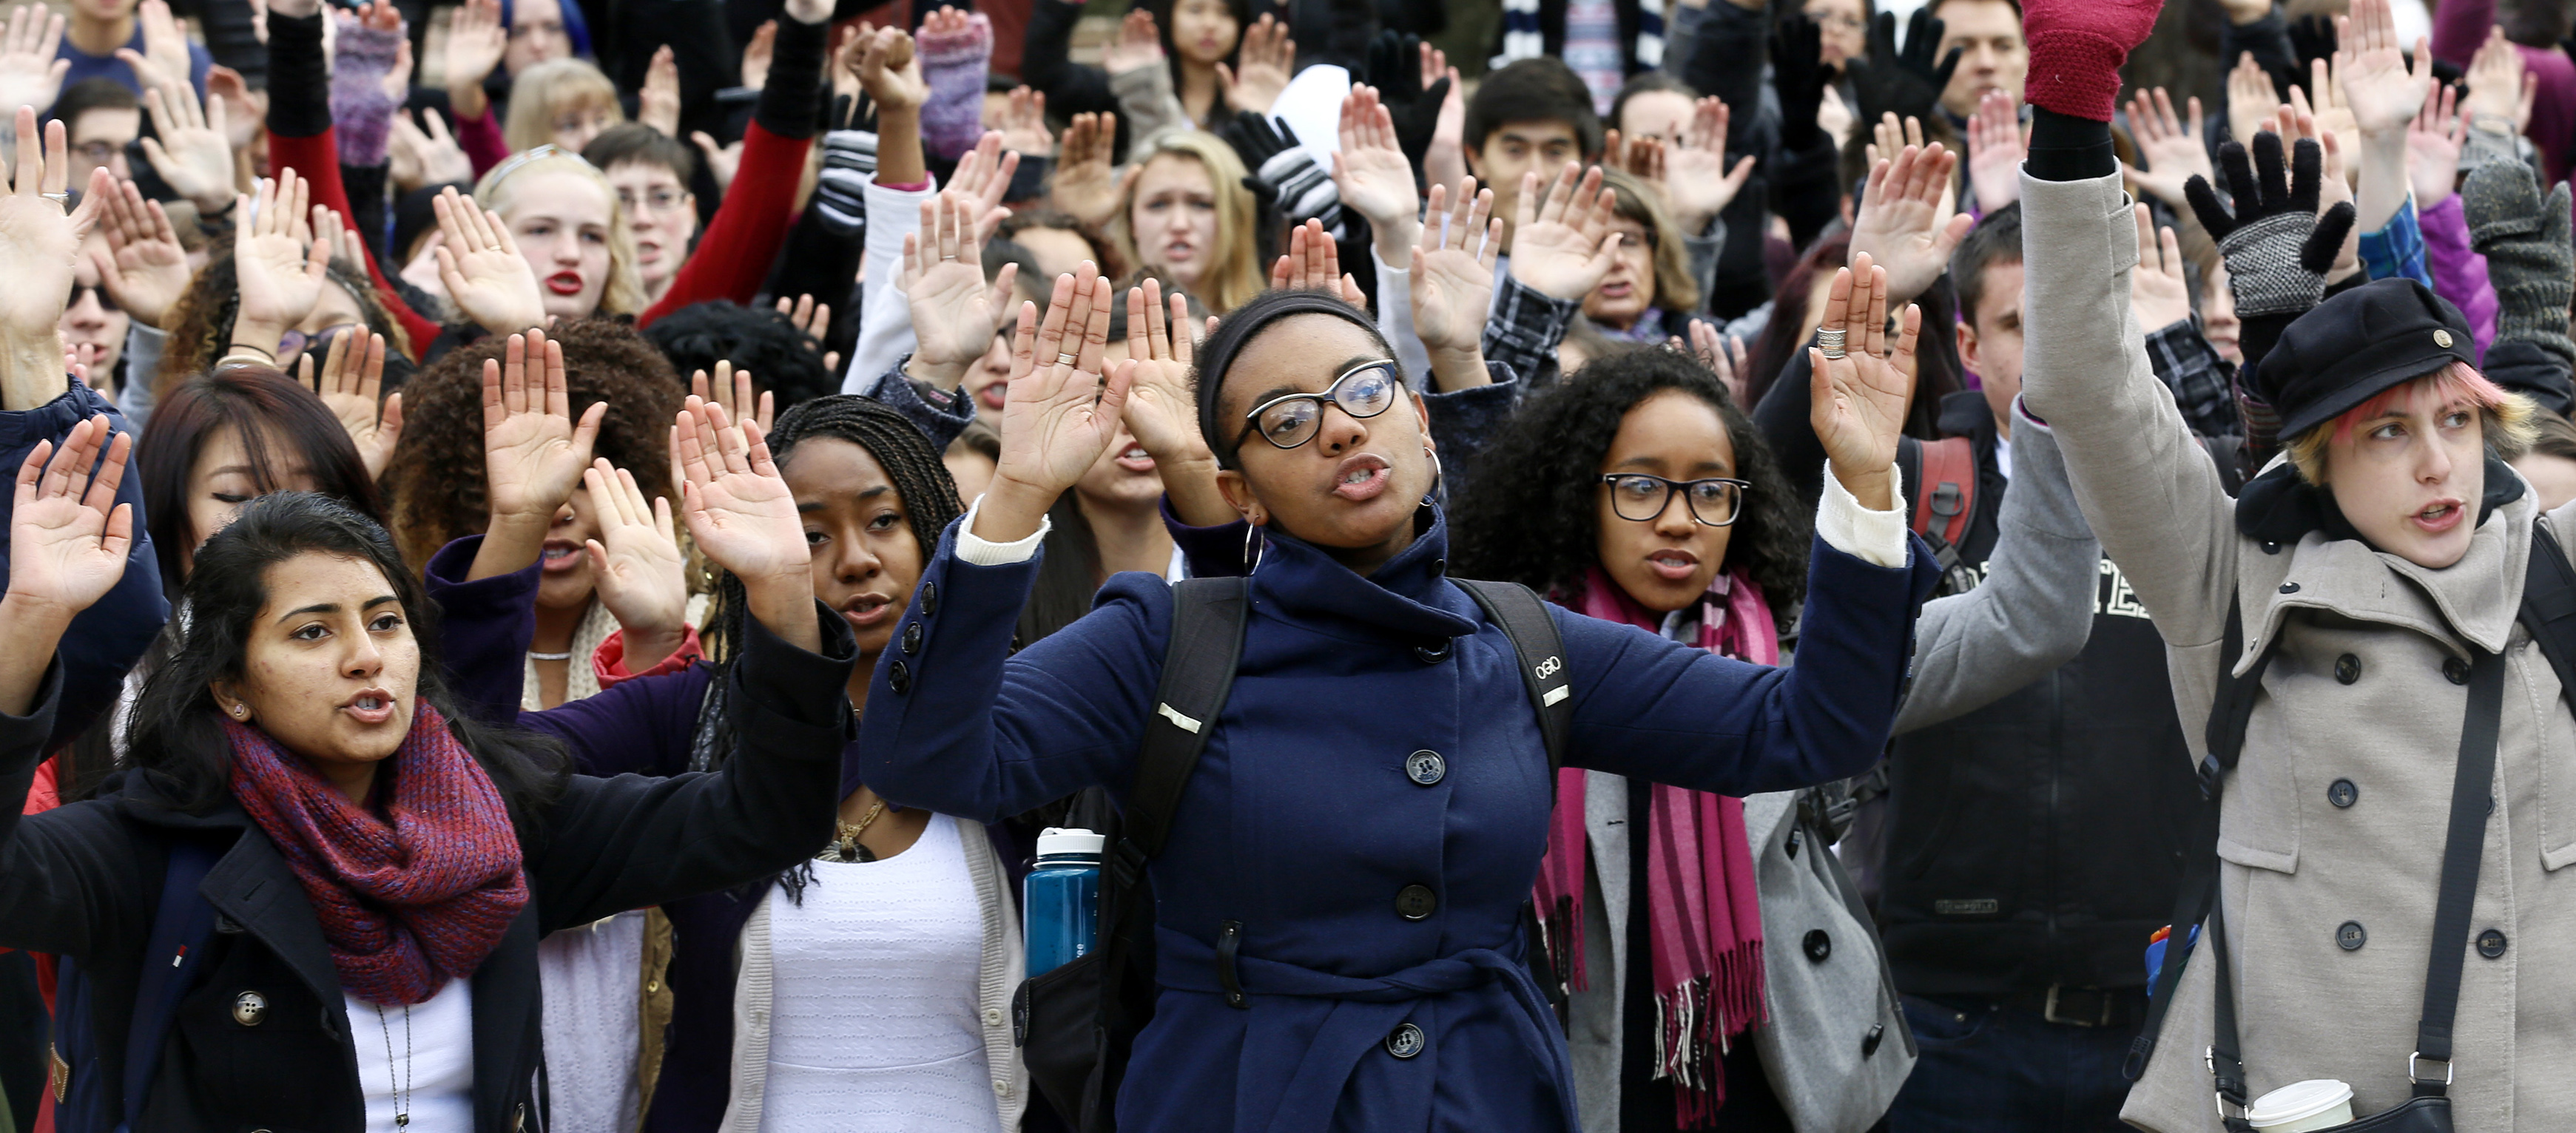 "Students at the University of Colorado chant ""Hands up, don't shoot"" as they hold up their hands for 4 1/2 minutes in support of protesters in Ferguson Missouri, during a demonstration, which was part of a national student walk-out, in Boulder, Colorado December 1, 2014.   REUTERS/Rick Wilking (UNITED STATES - Tags: EDUCATION CRIME LAW CIVIL UNREST) - RTR4GBFB"